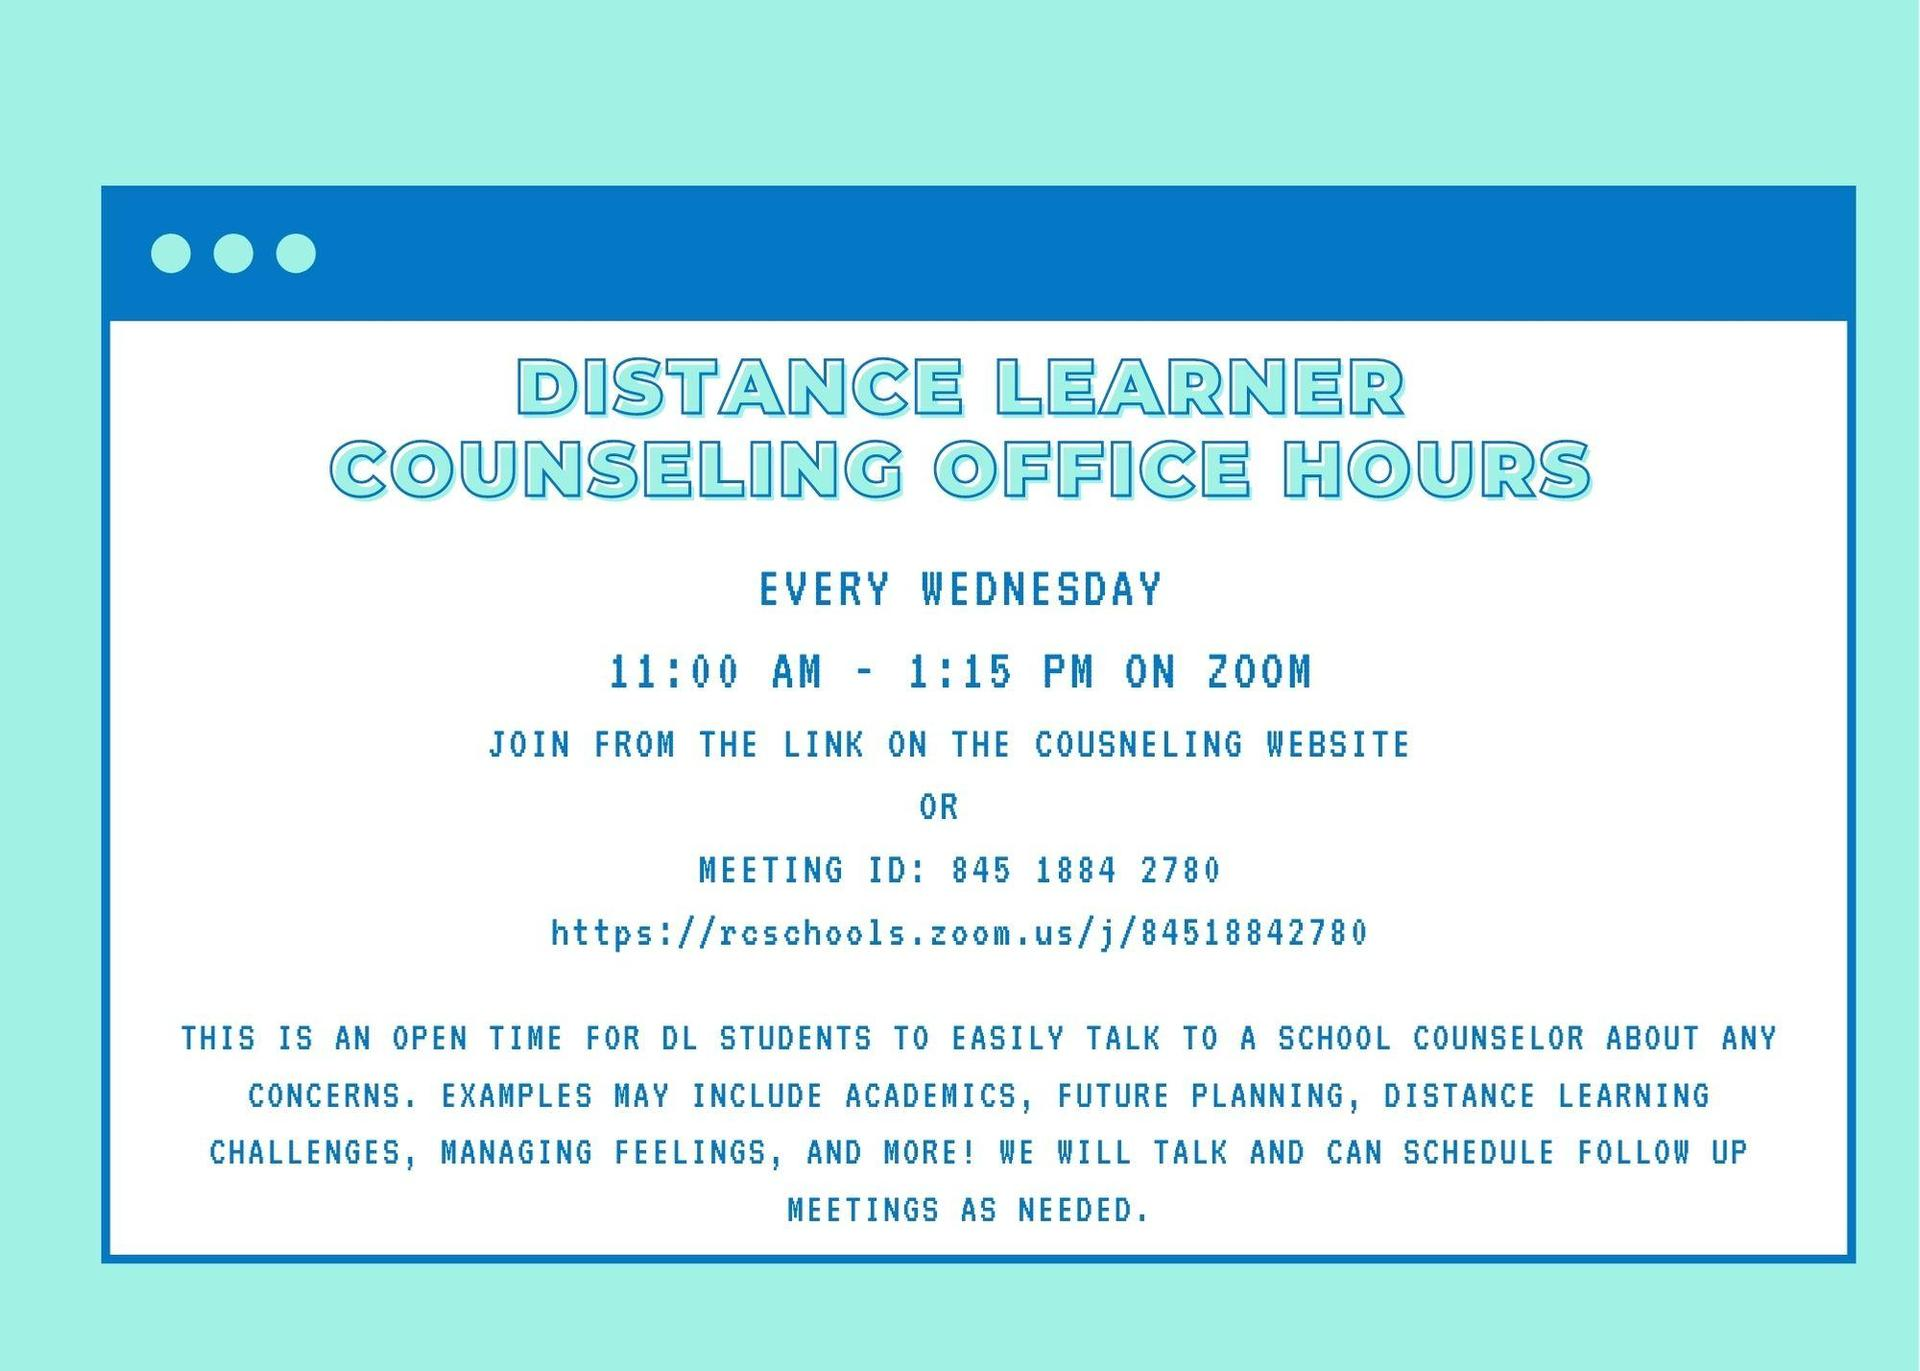 Distance Learning Office Hours